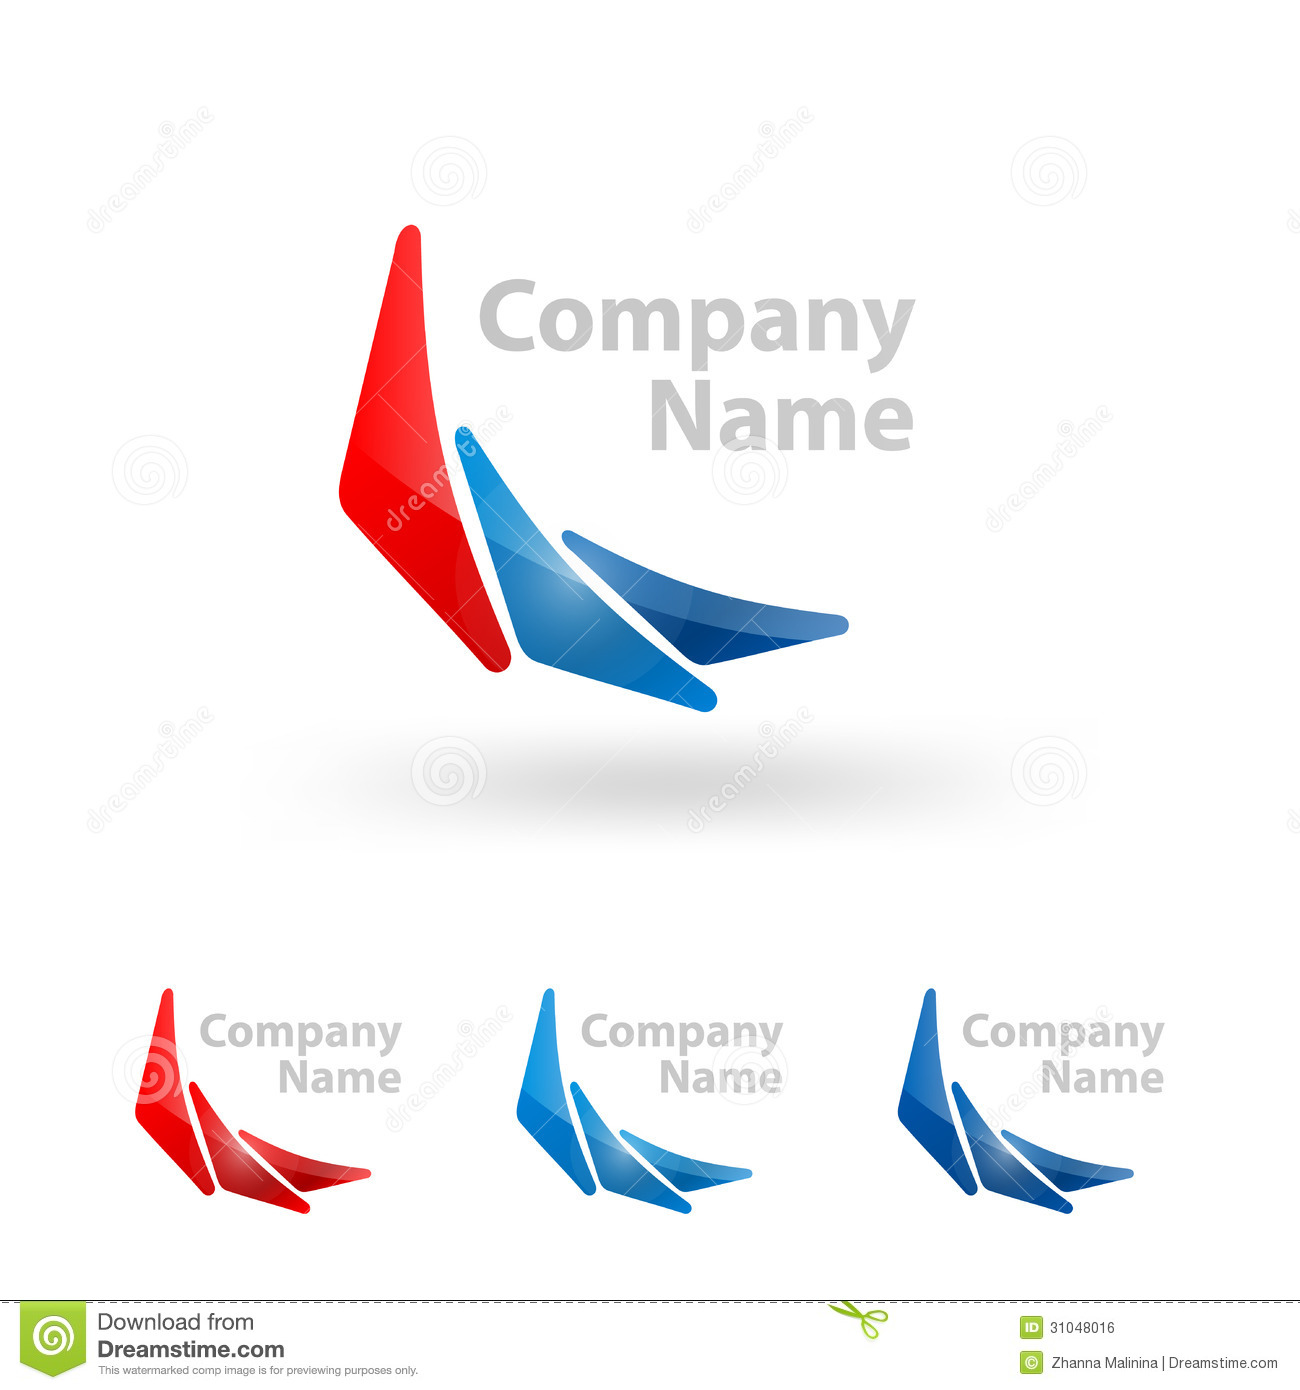 Triangle logo company name design stock vector for Design a company logo free templates